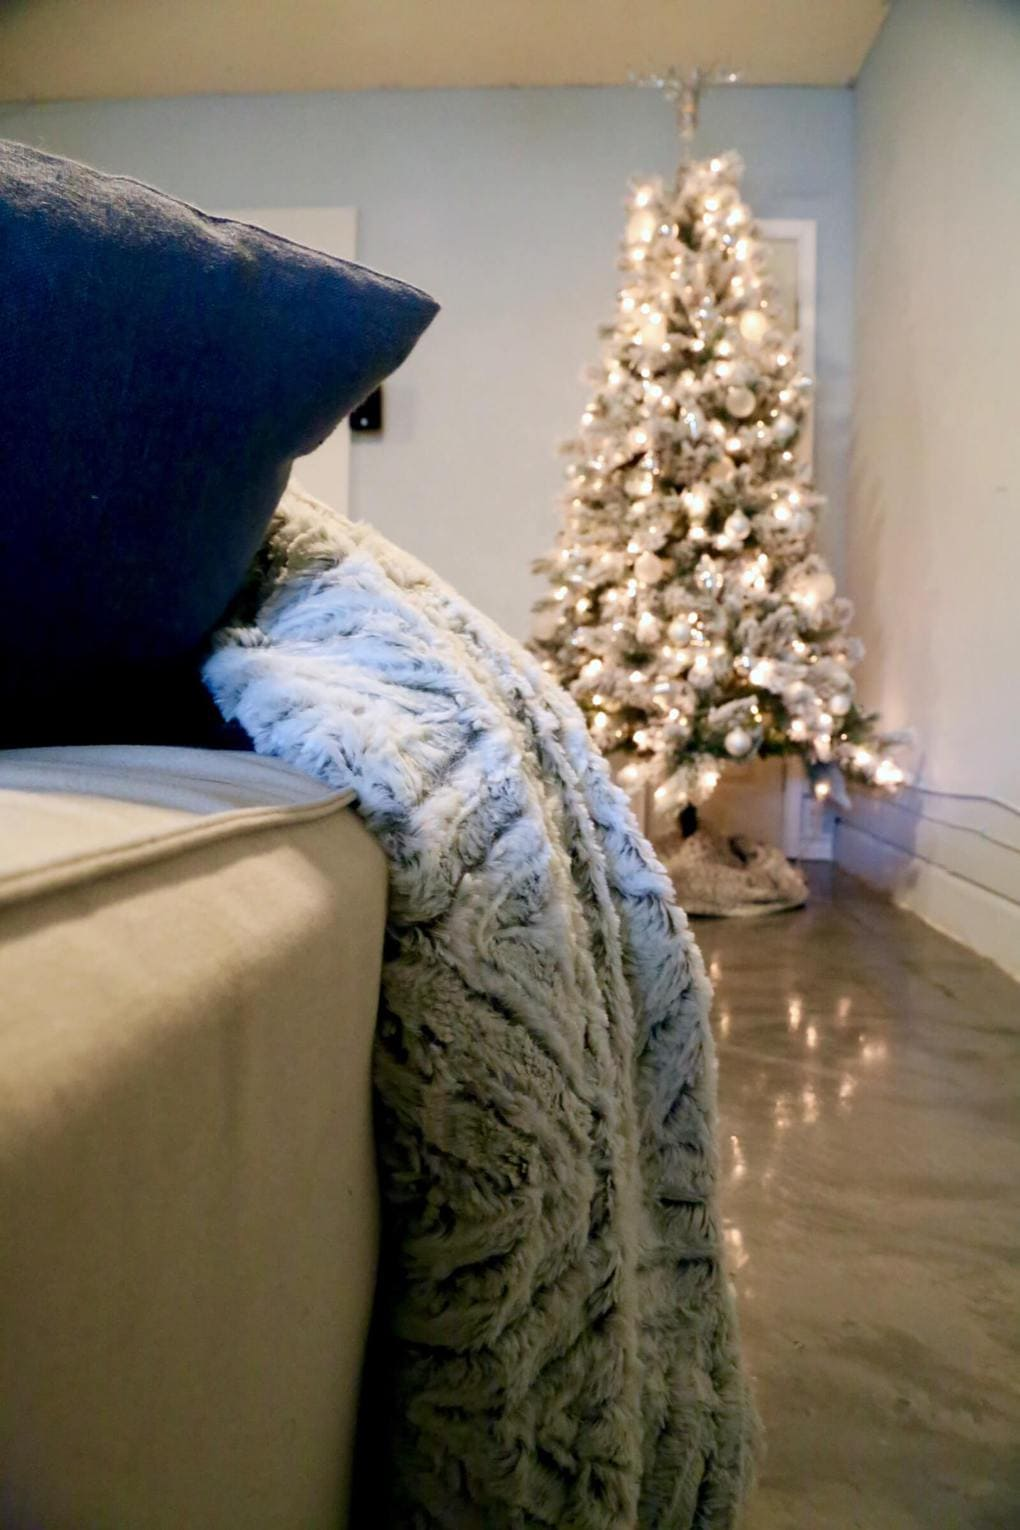 Great tips, tricks, and ideas for decorating for the Christmas season. This tree is so gorgeous and these tips are such a practical way to get your home looking great for Christmas without a ton of effort